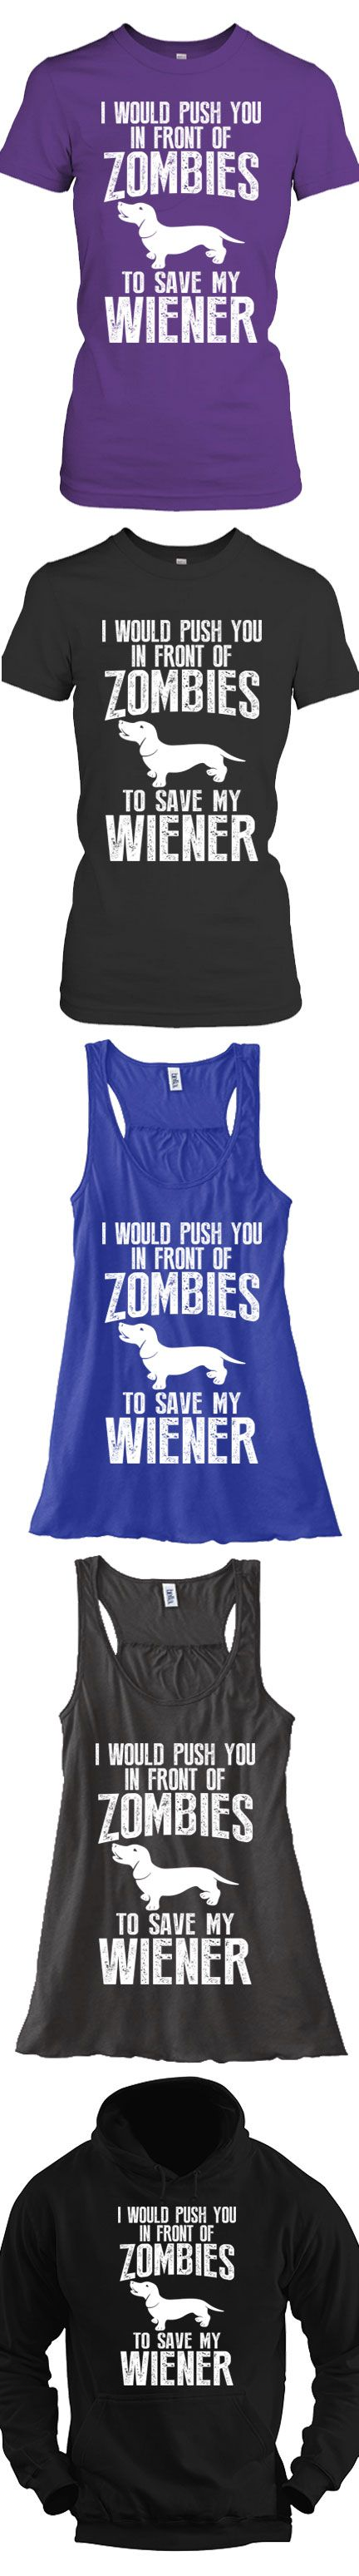 Love A Wiener? Then Click The Image To Buy It Now or Tag Someone You Want To Buy This For.